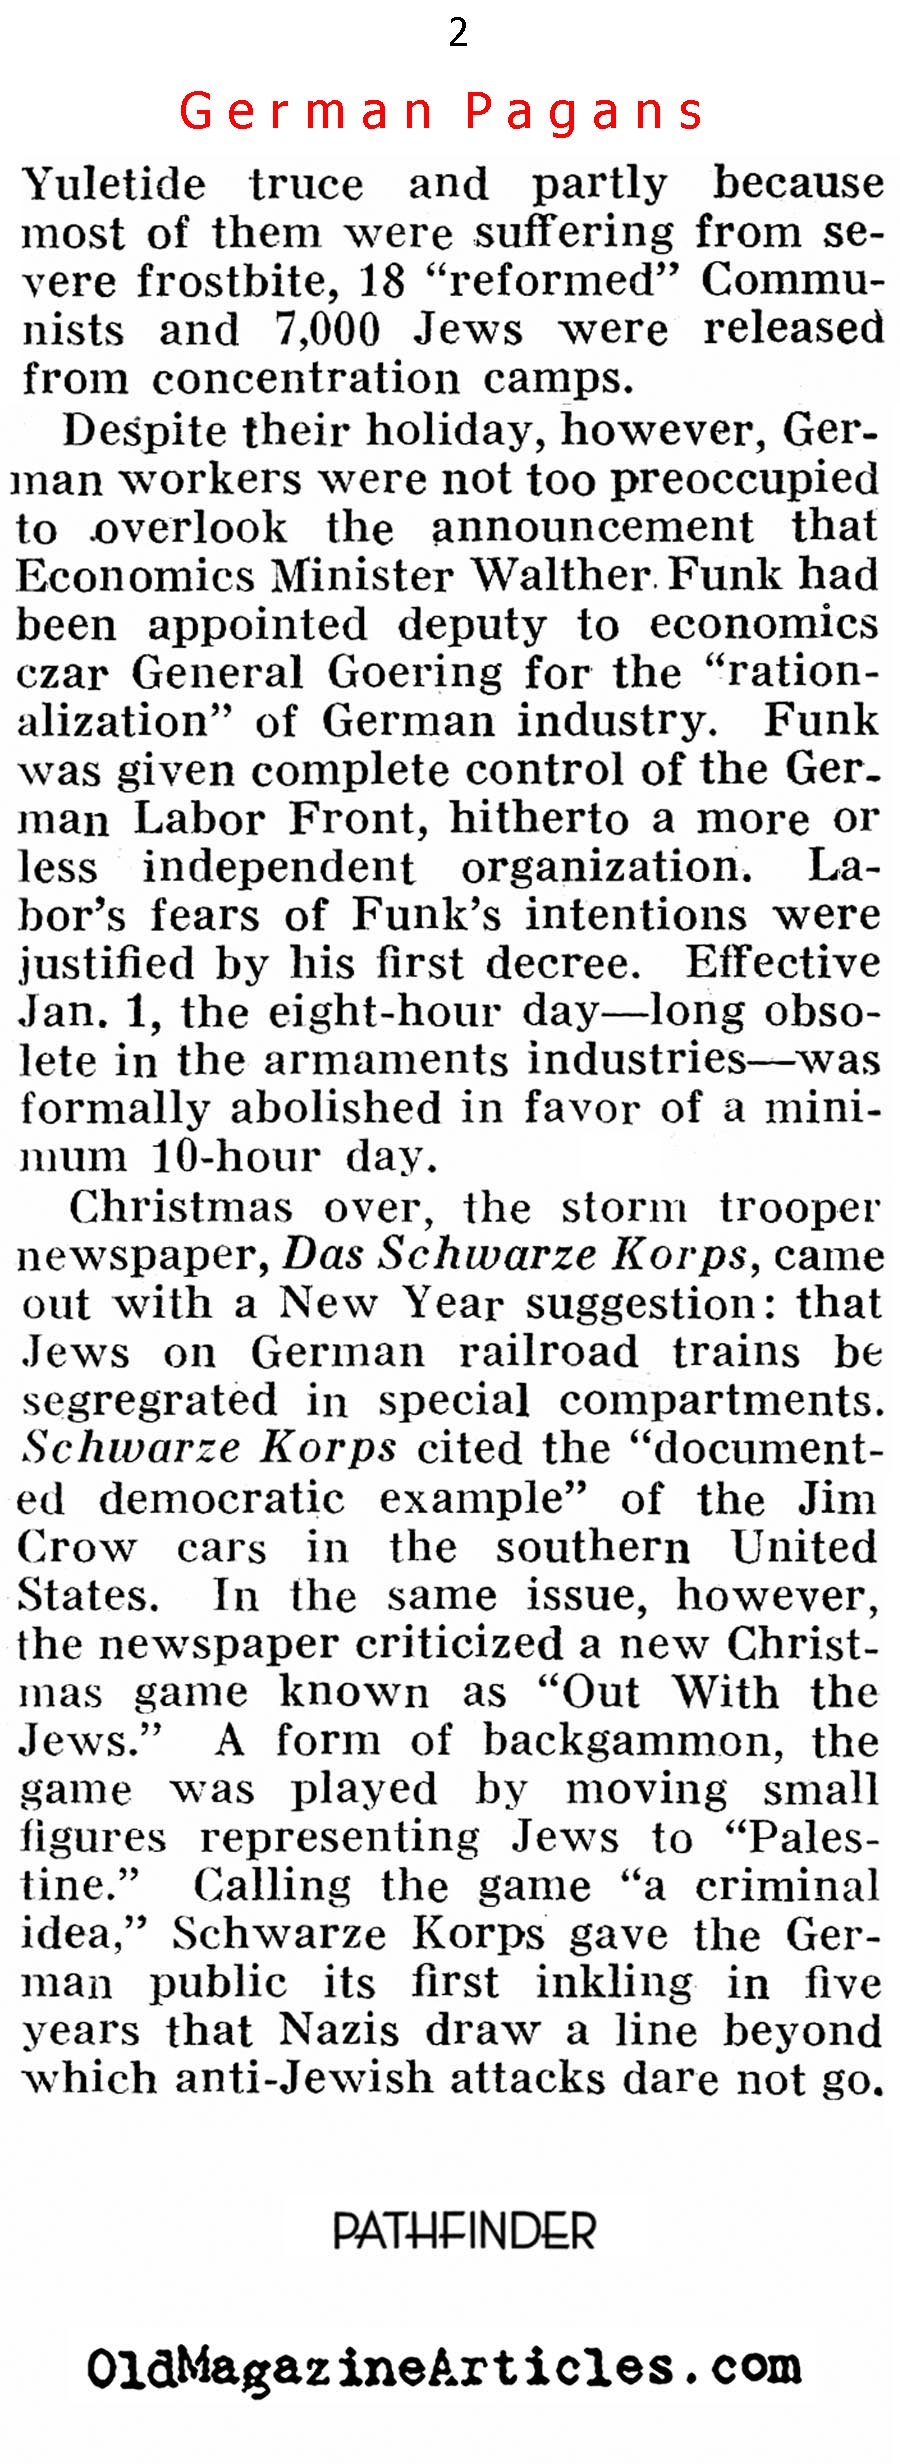 A Very Hitler Christmas (Pathfinder Magazine, 1939)